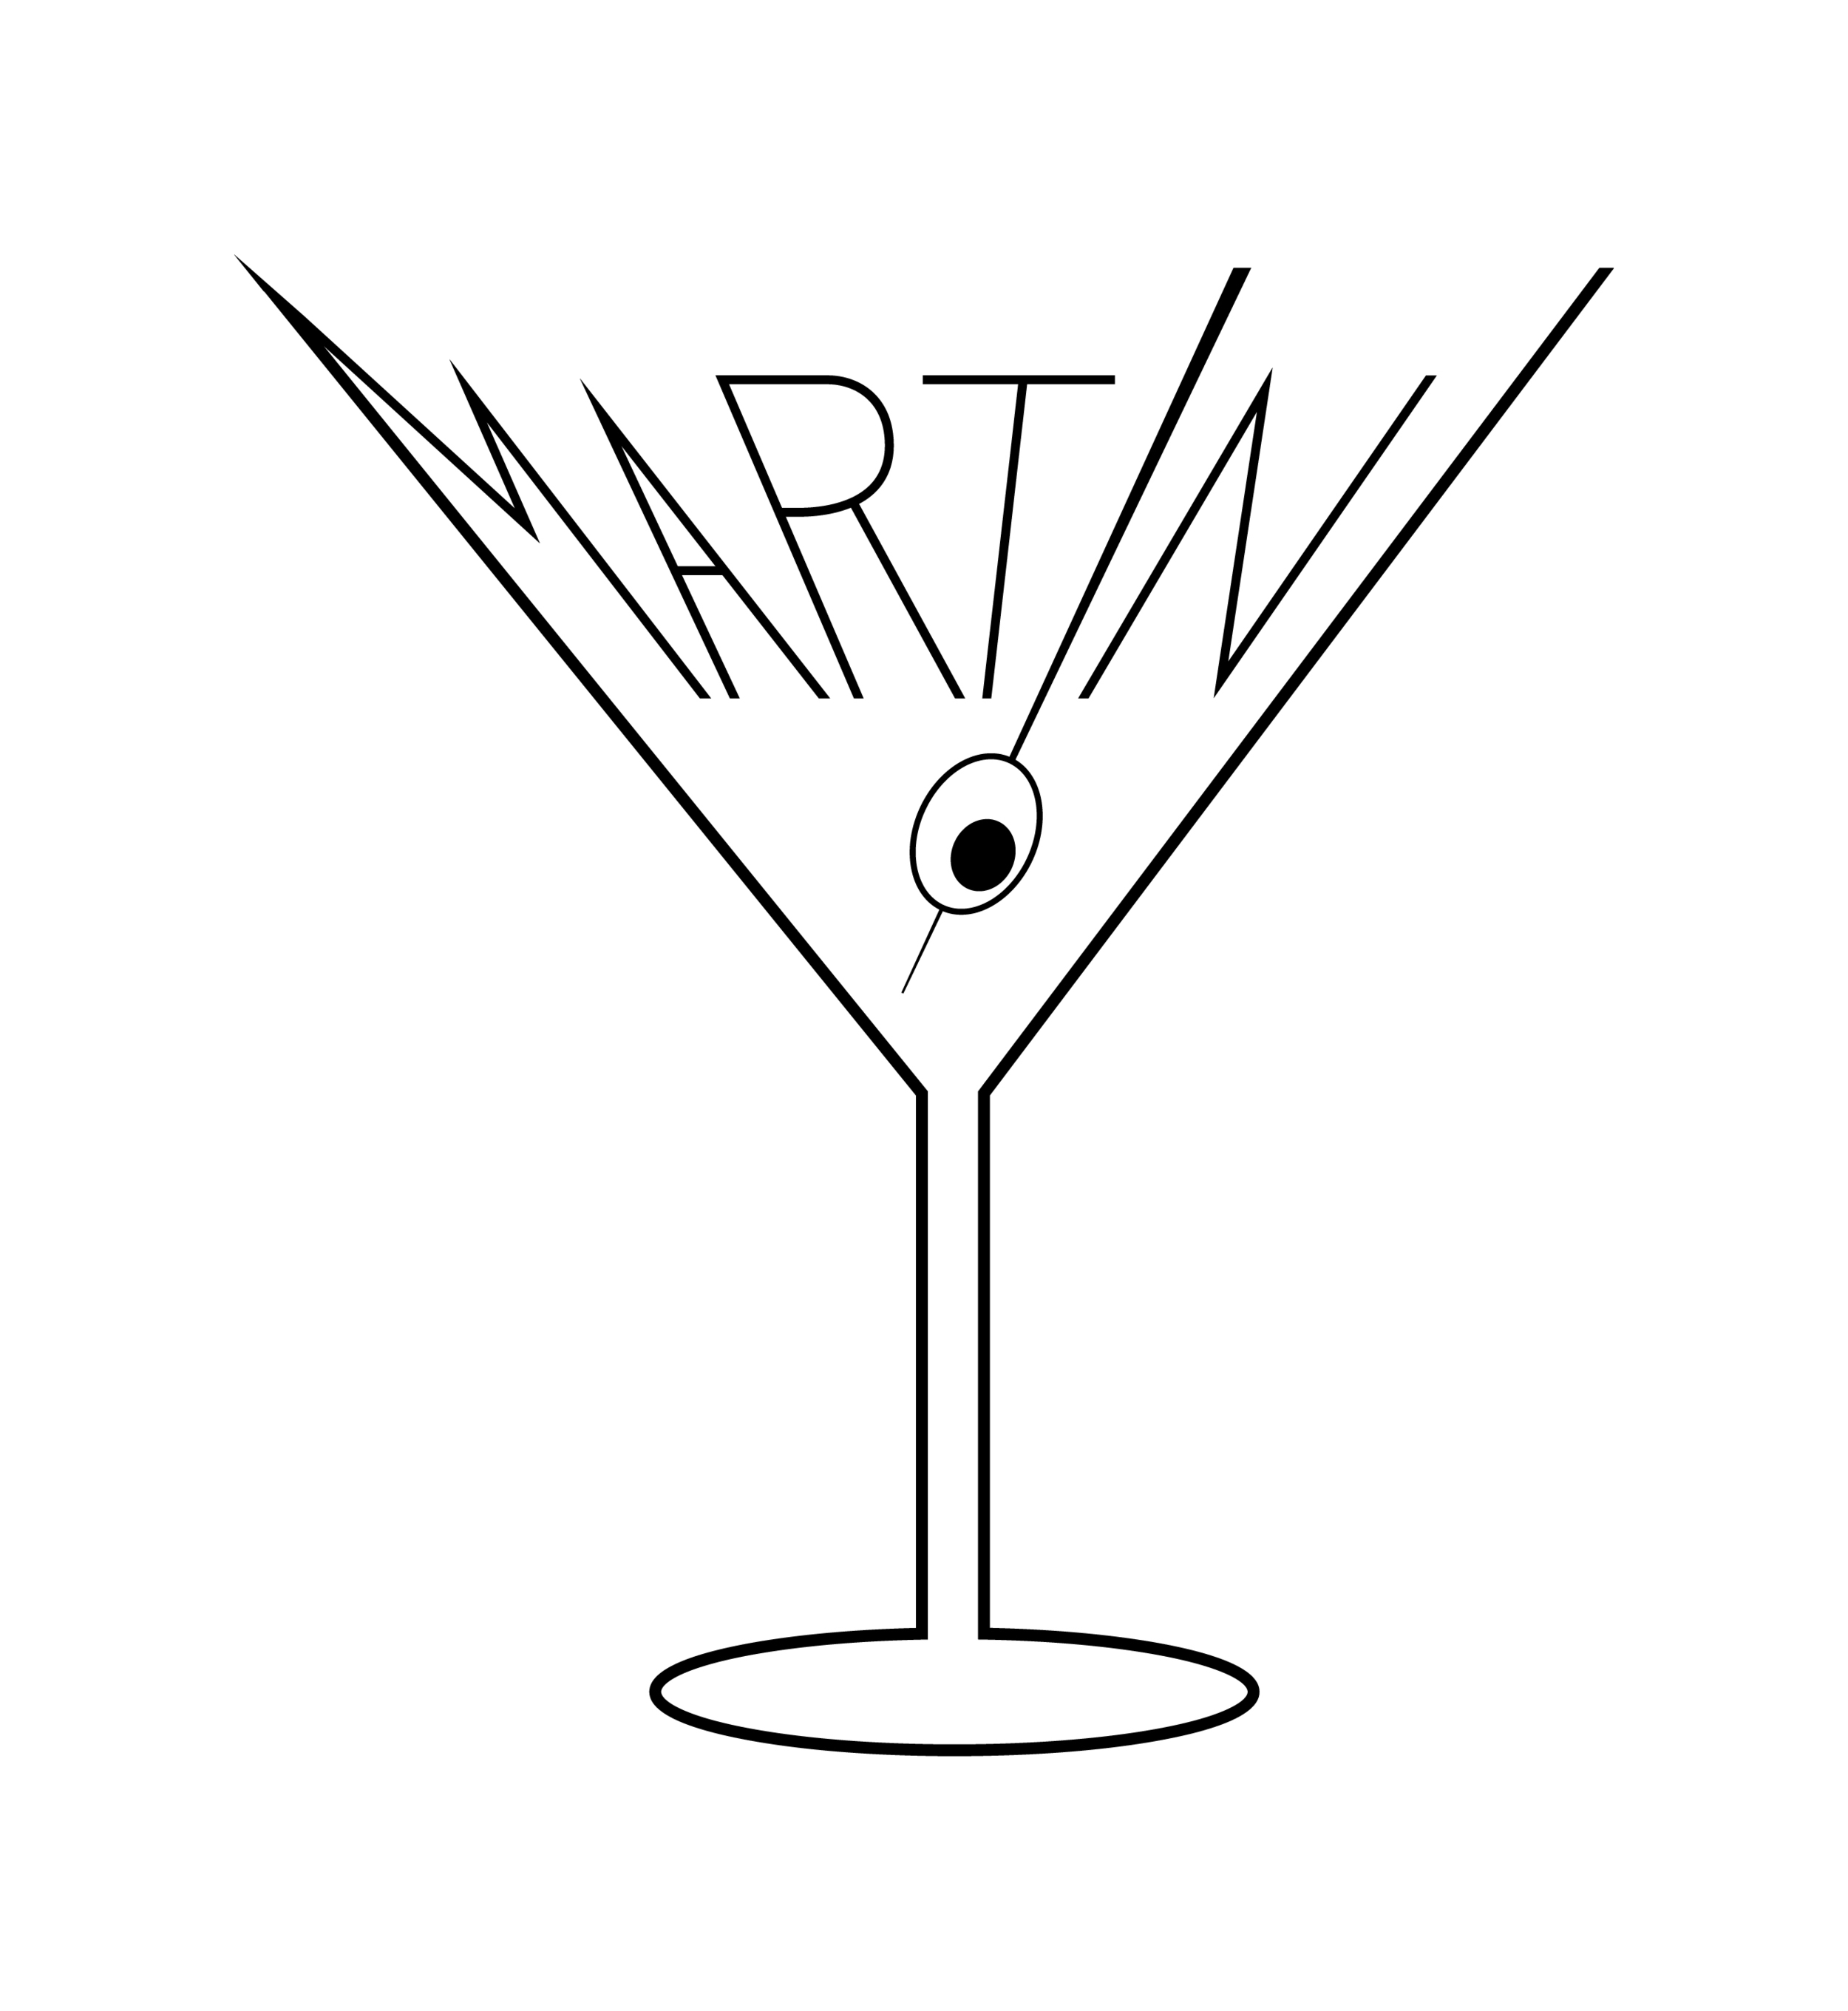 Typographic Illustration of the Word Martini